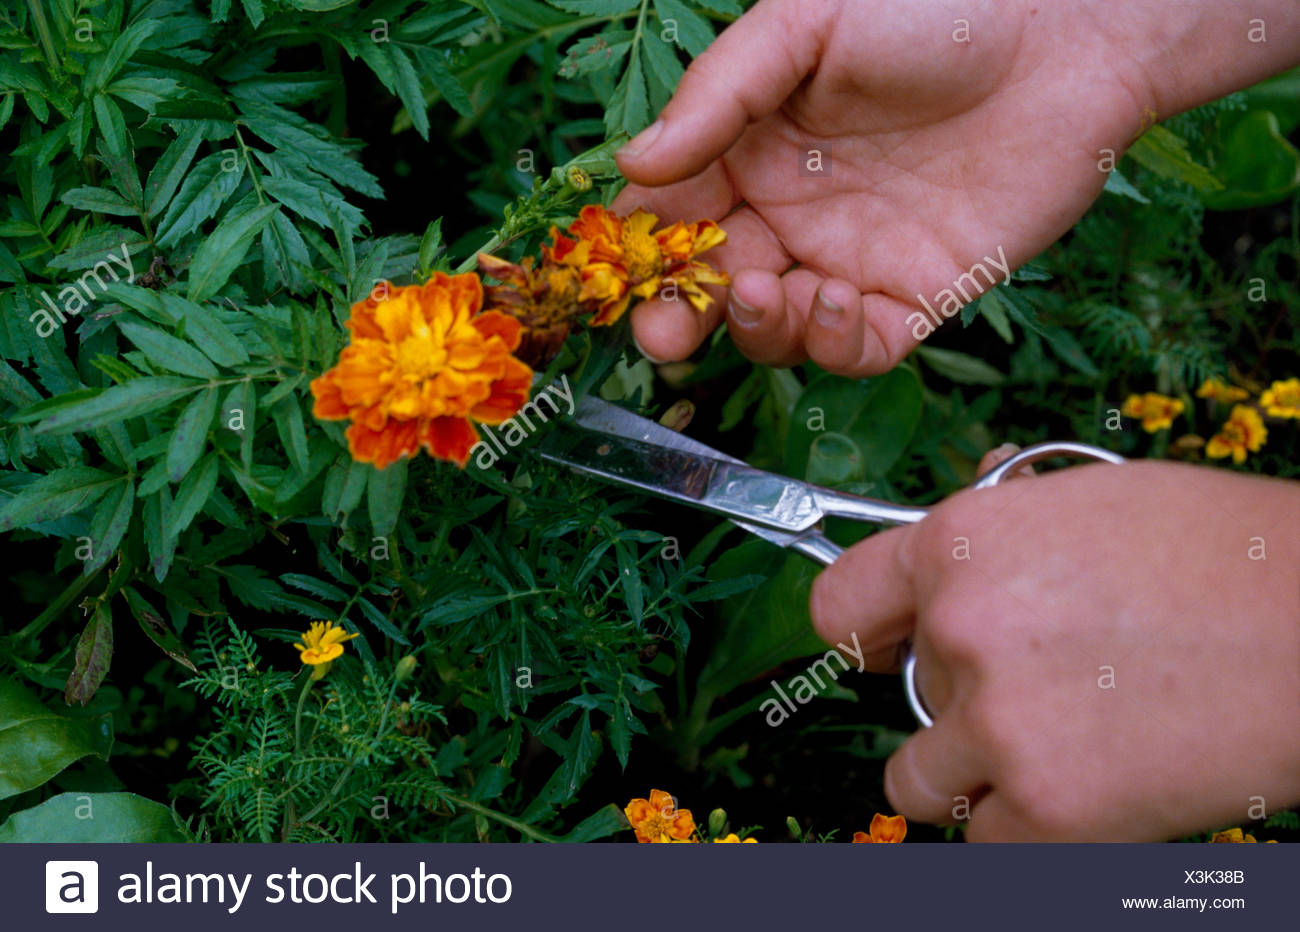 Close-up of hands dead-heading Tagetes - Stock Image